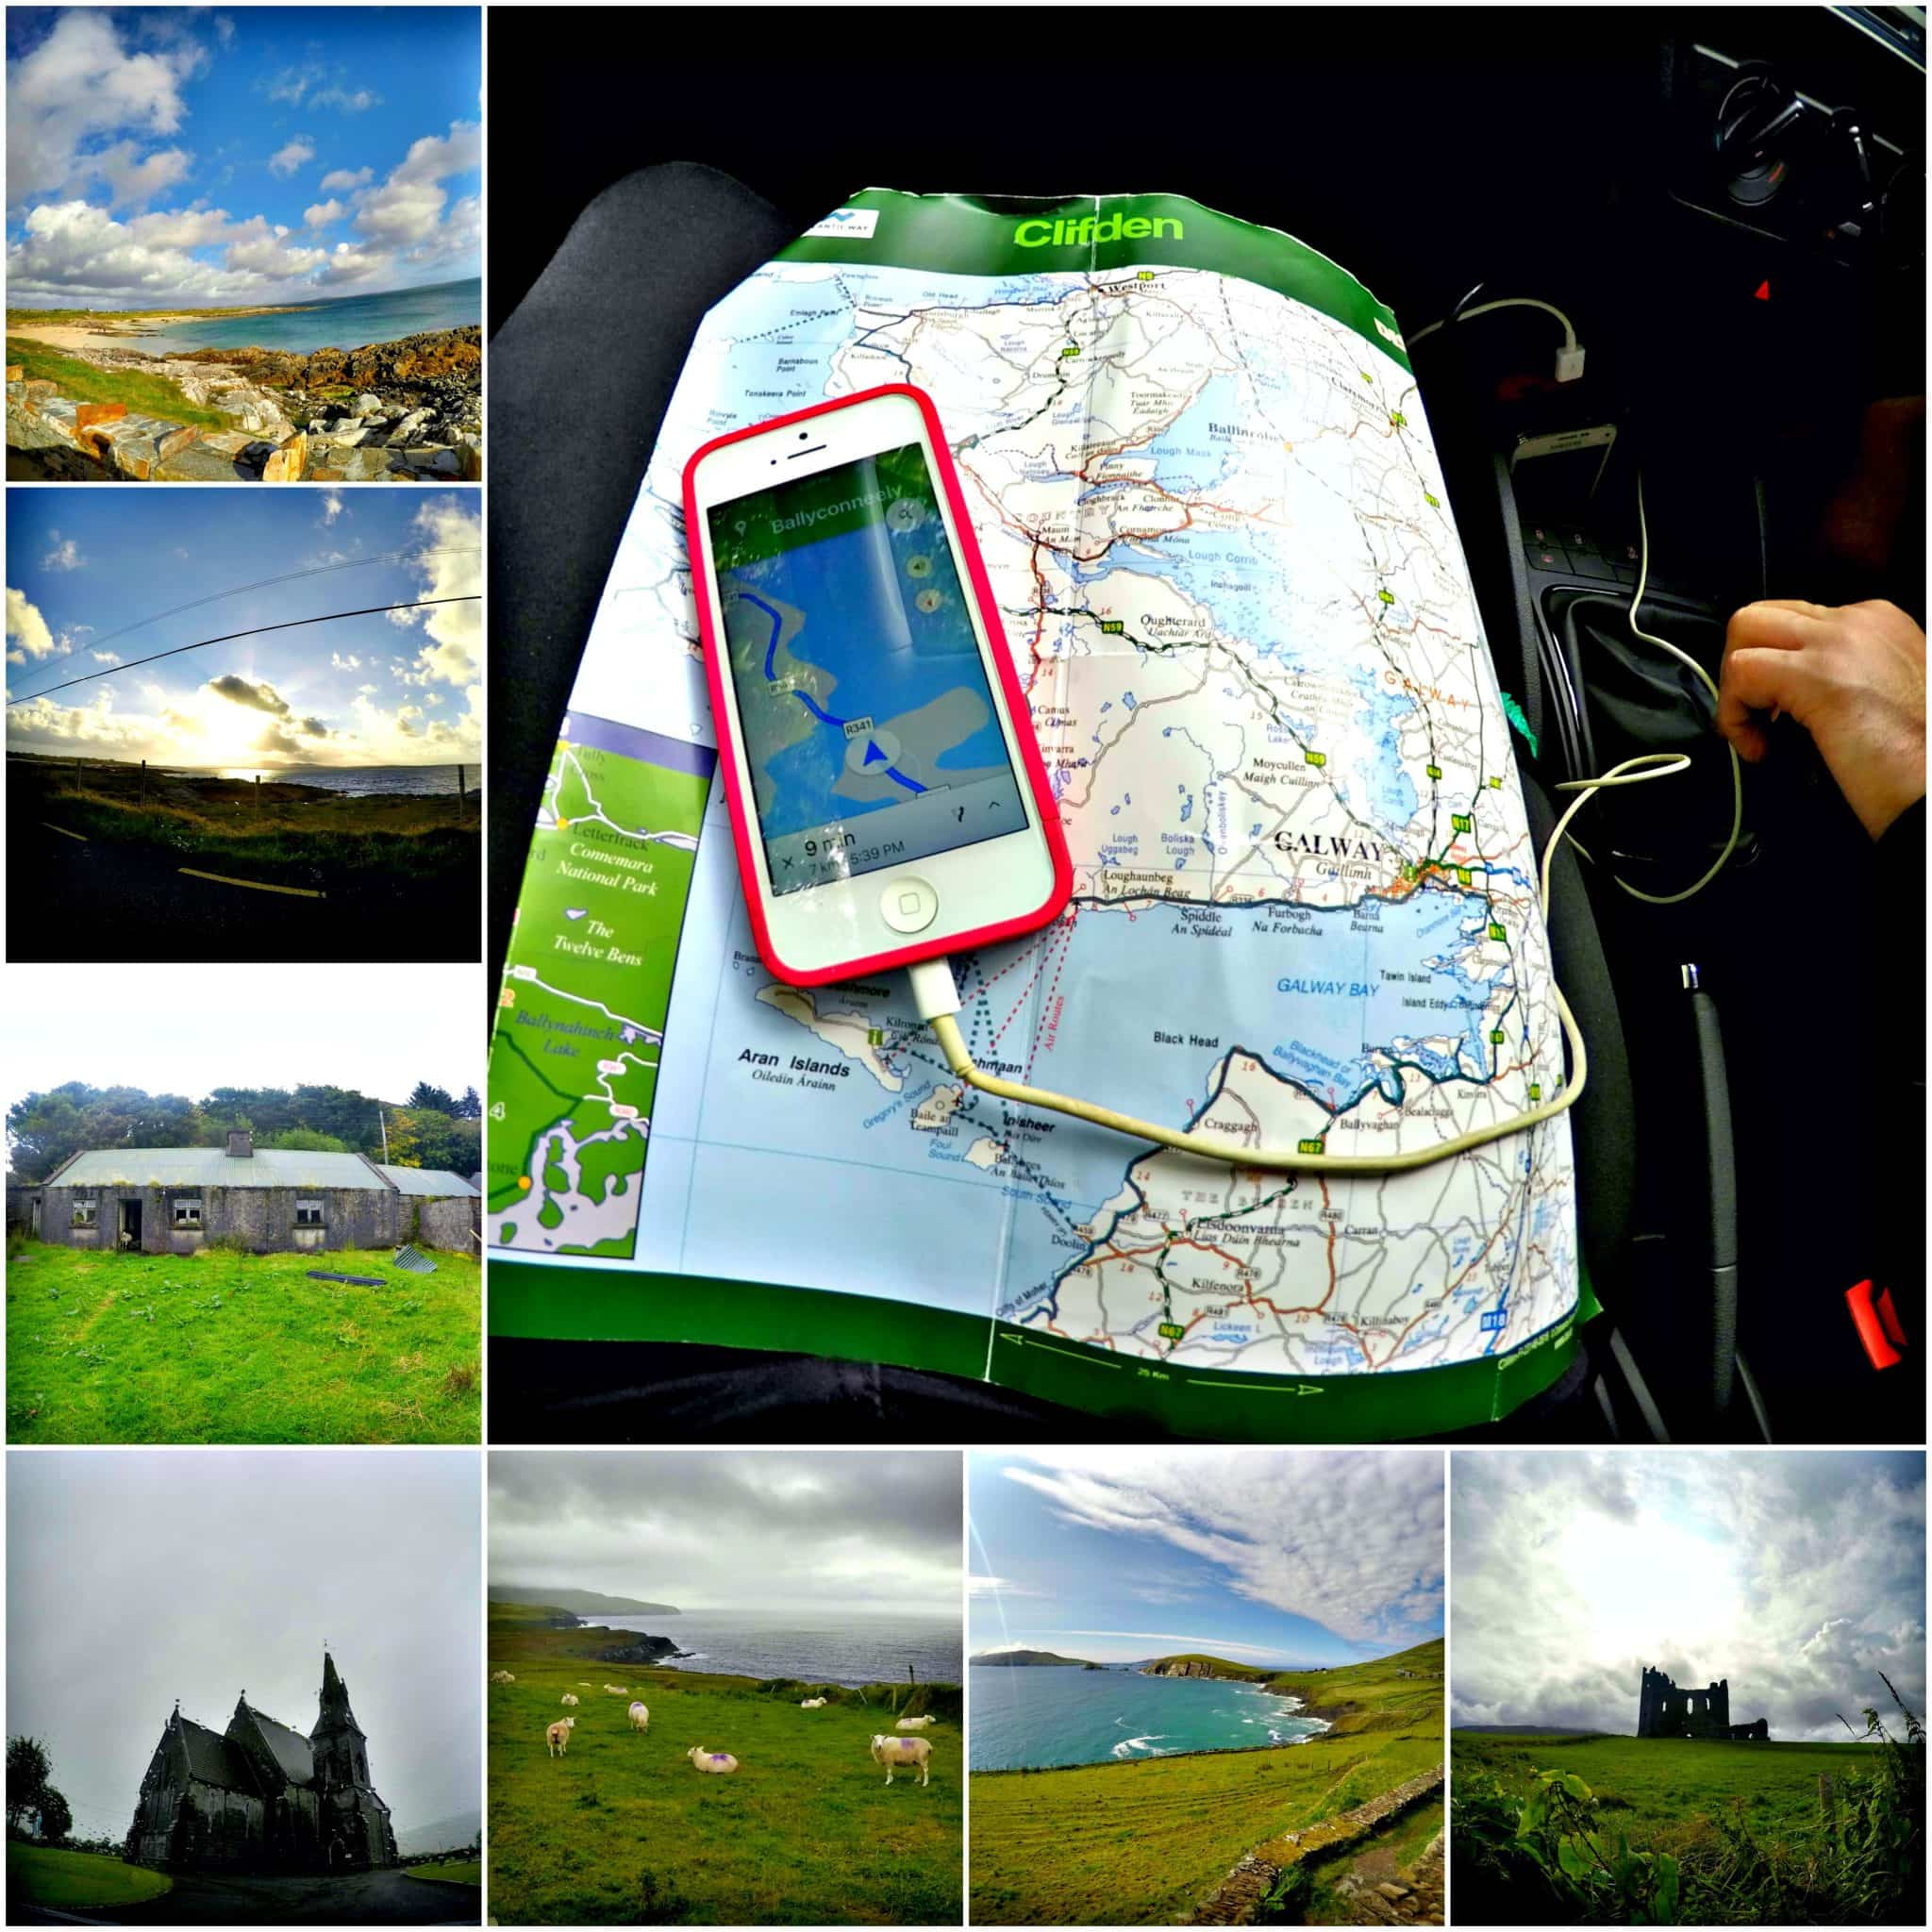 trip planning with sights From the Window of a Car